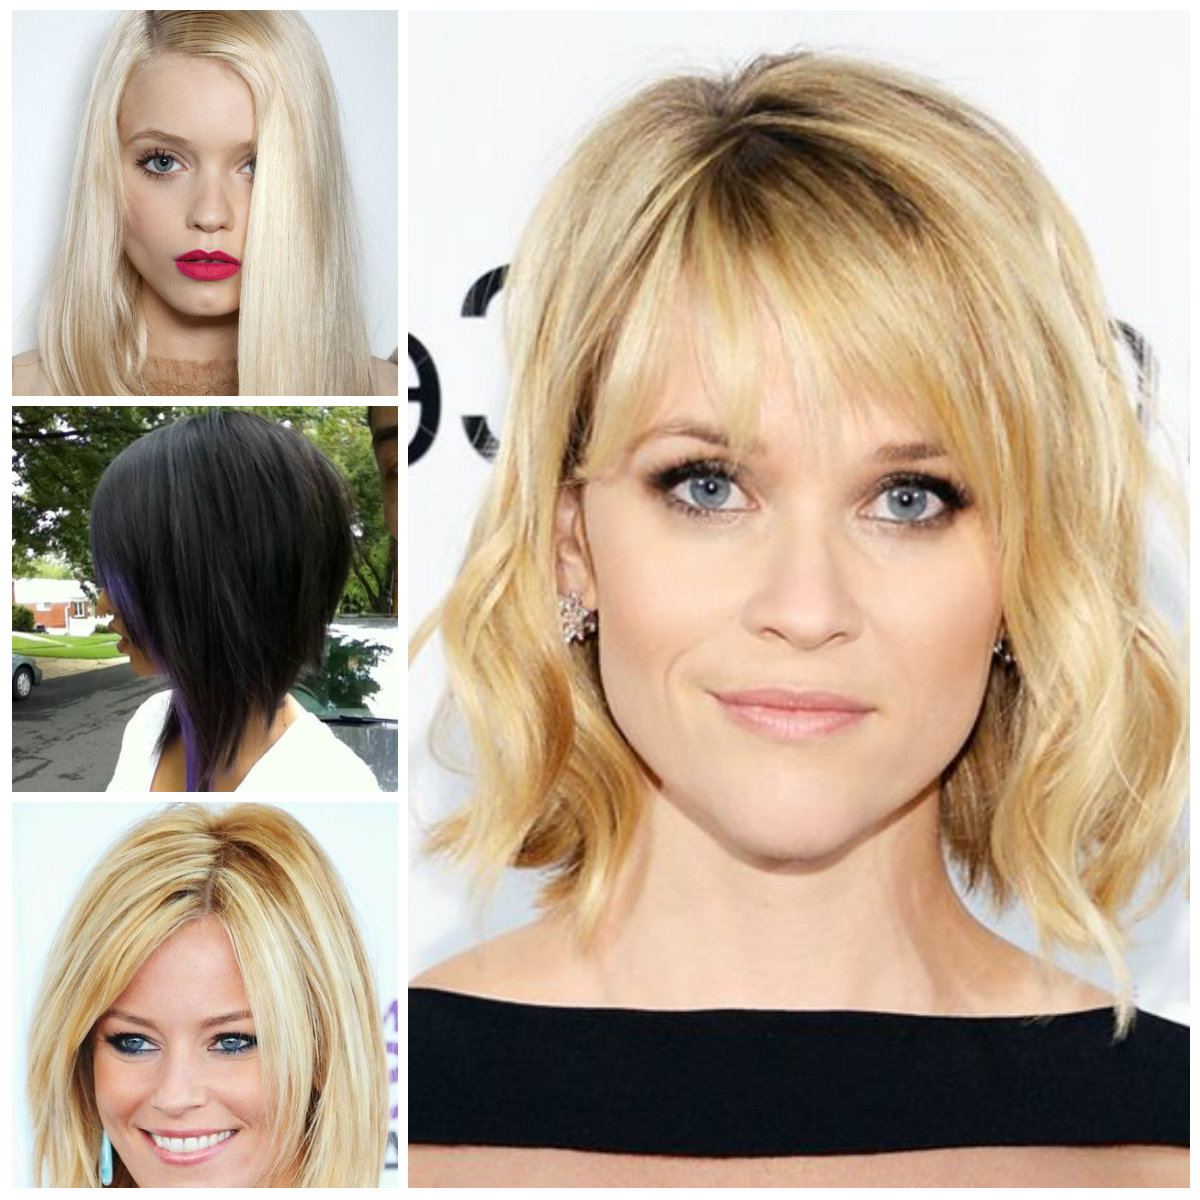 Medium Hairstyles | Haircuts, Hairstyles 2019 And Hair Colors For Pertaining To Short To Medium Hairstyles With Bangs (View 9 of 25)